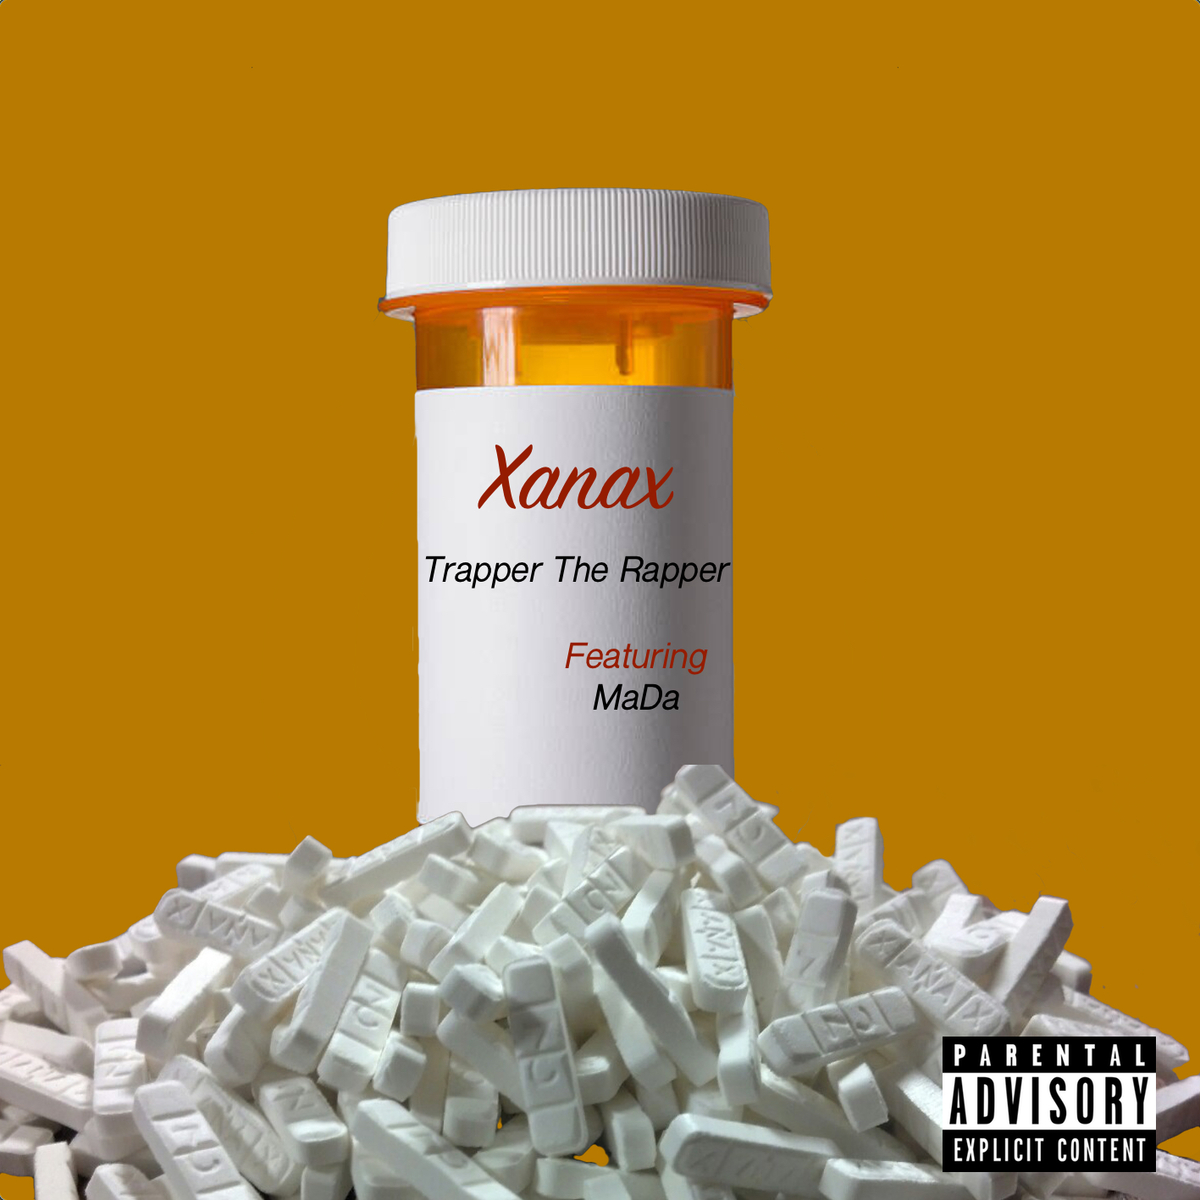 Trapper the Rapper - Xanax (SERVICE PACK)